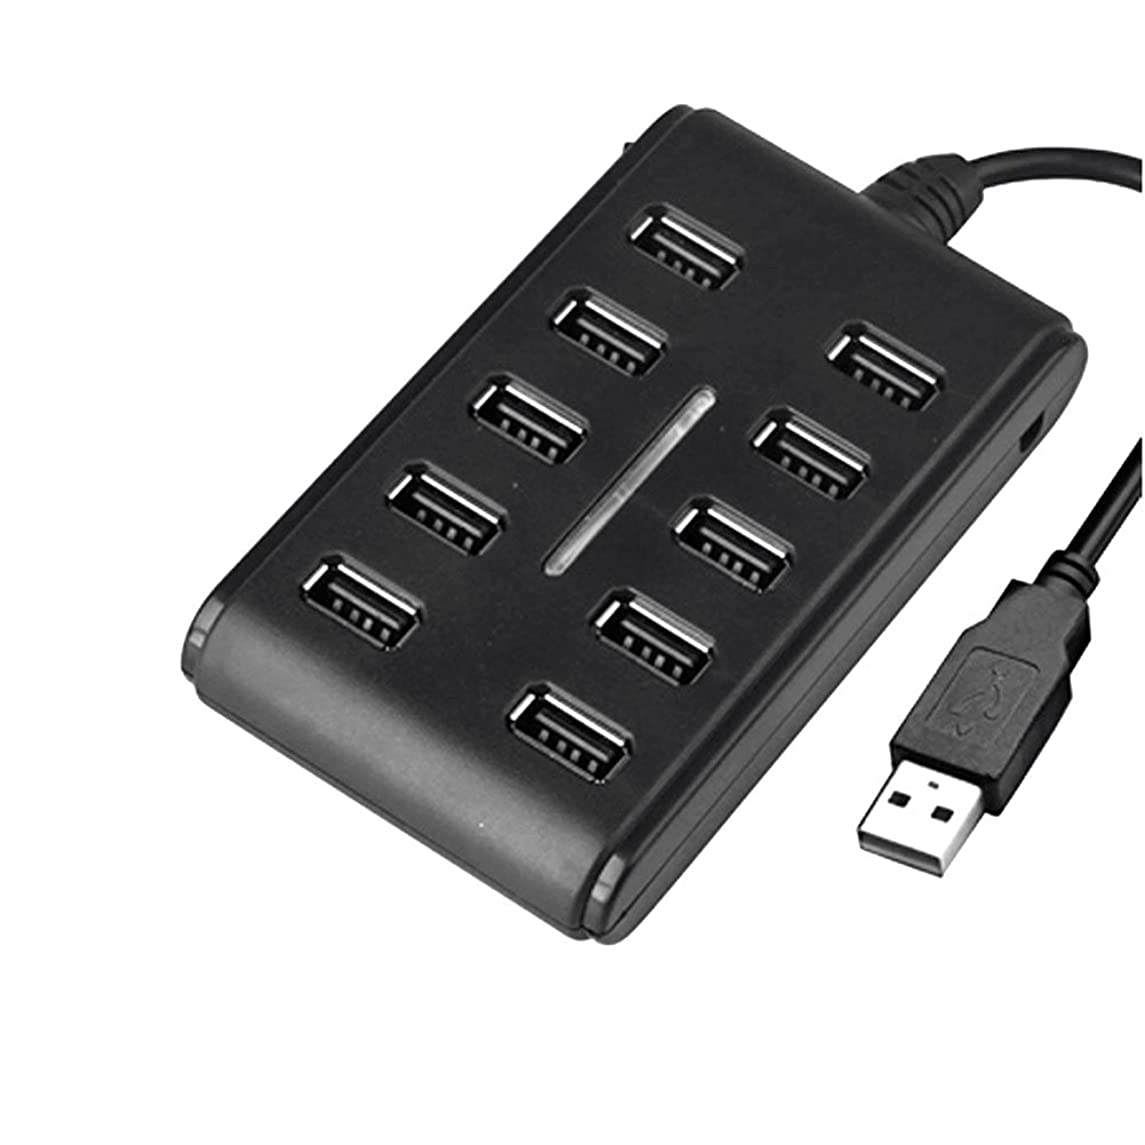 Ywillink 10 Ports Hub USB 2.0 High Speed Adapter Extension Cable Plug & Play for PC Laptop